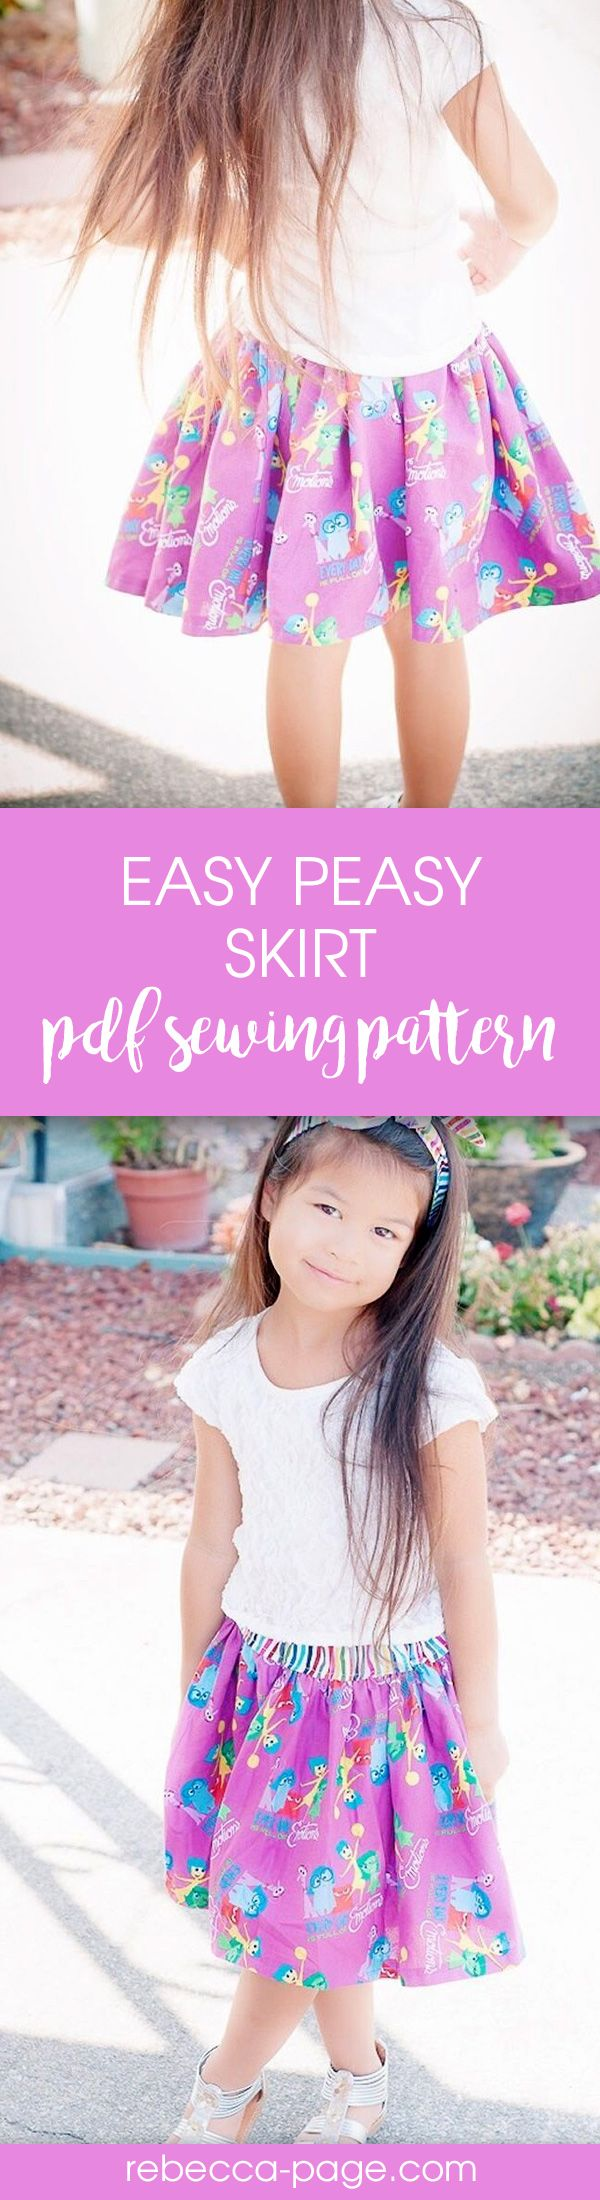 Really easy, really cute. Beginner skirt sewing pattern. Babies & girls up to 12 years.